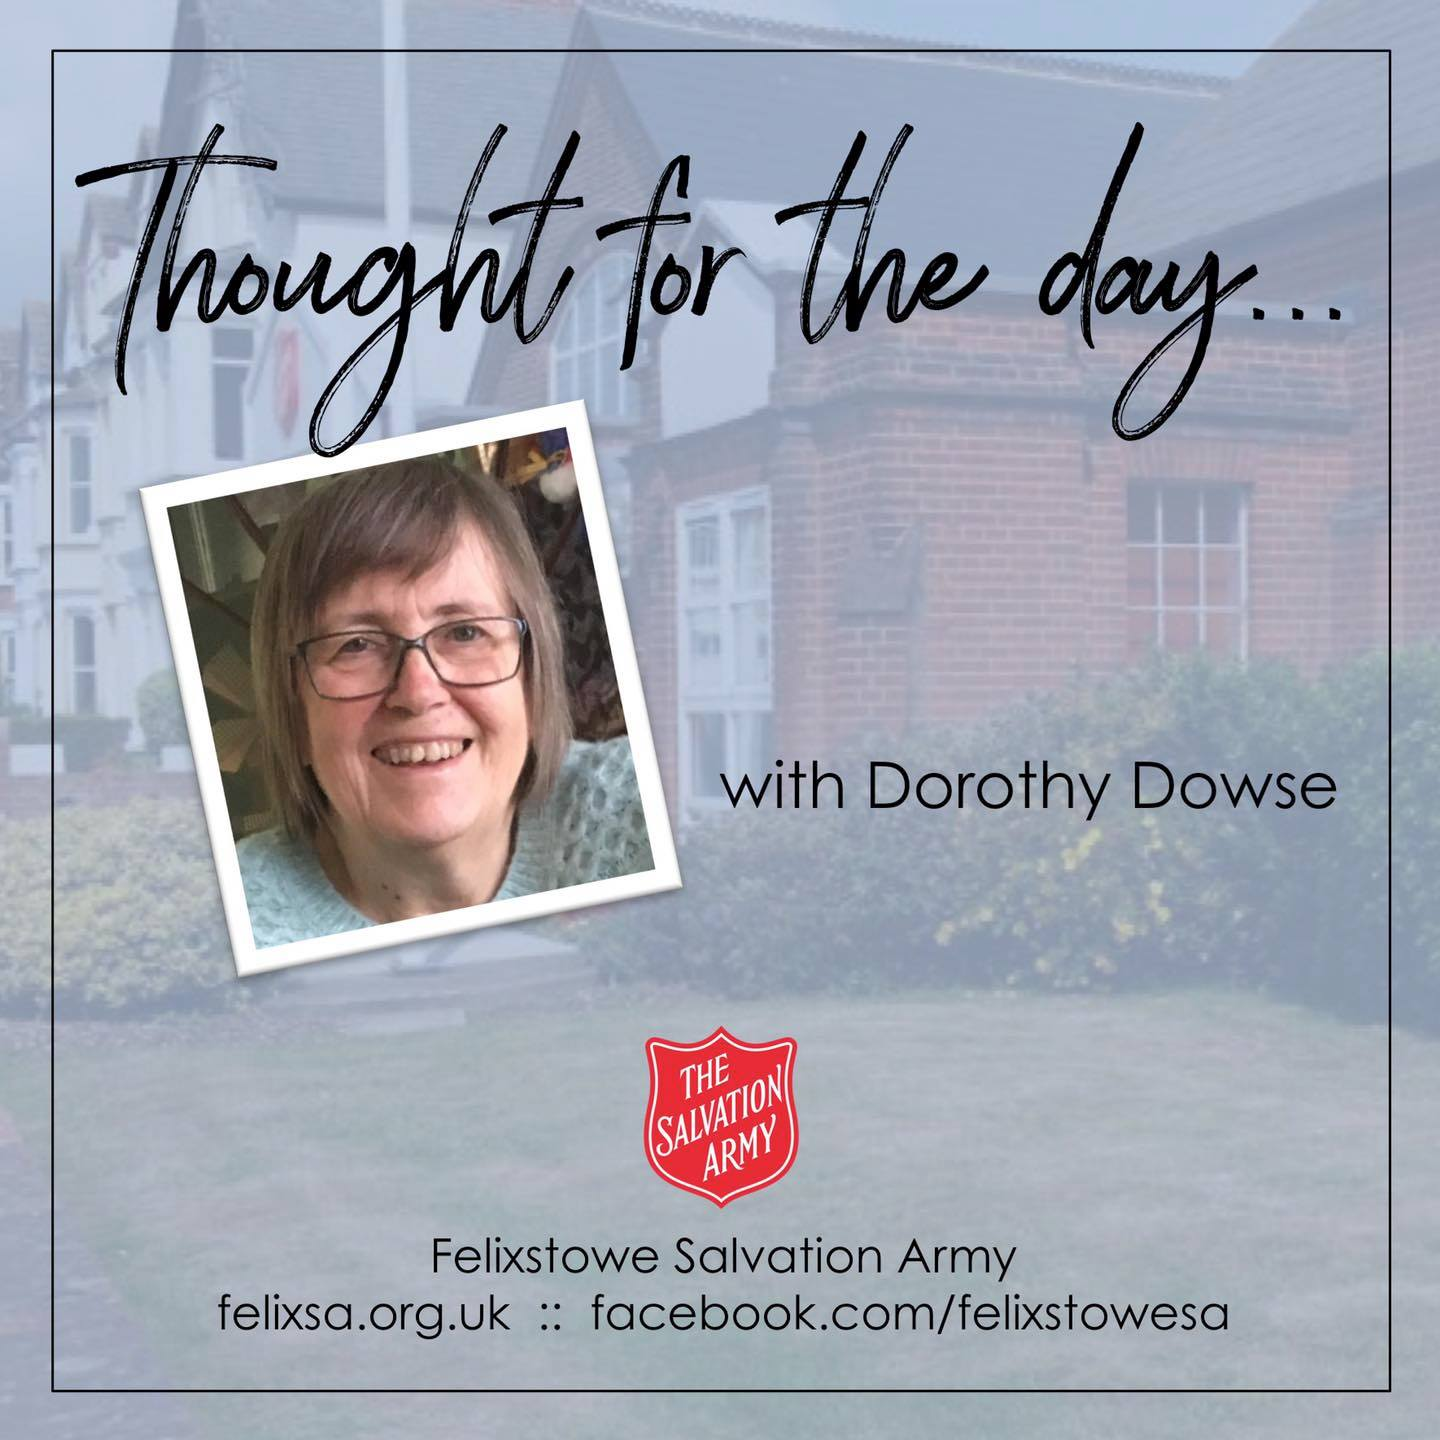 Thought for the Day with Dorothy Dowse